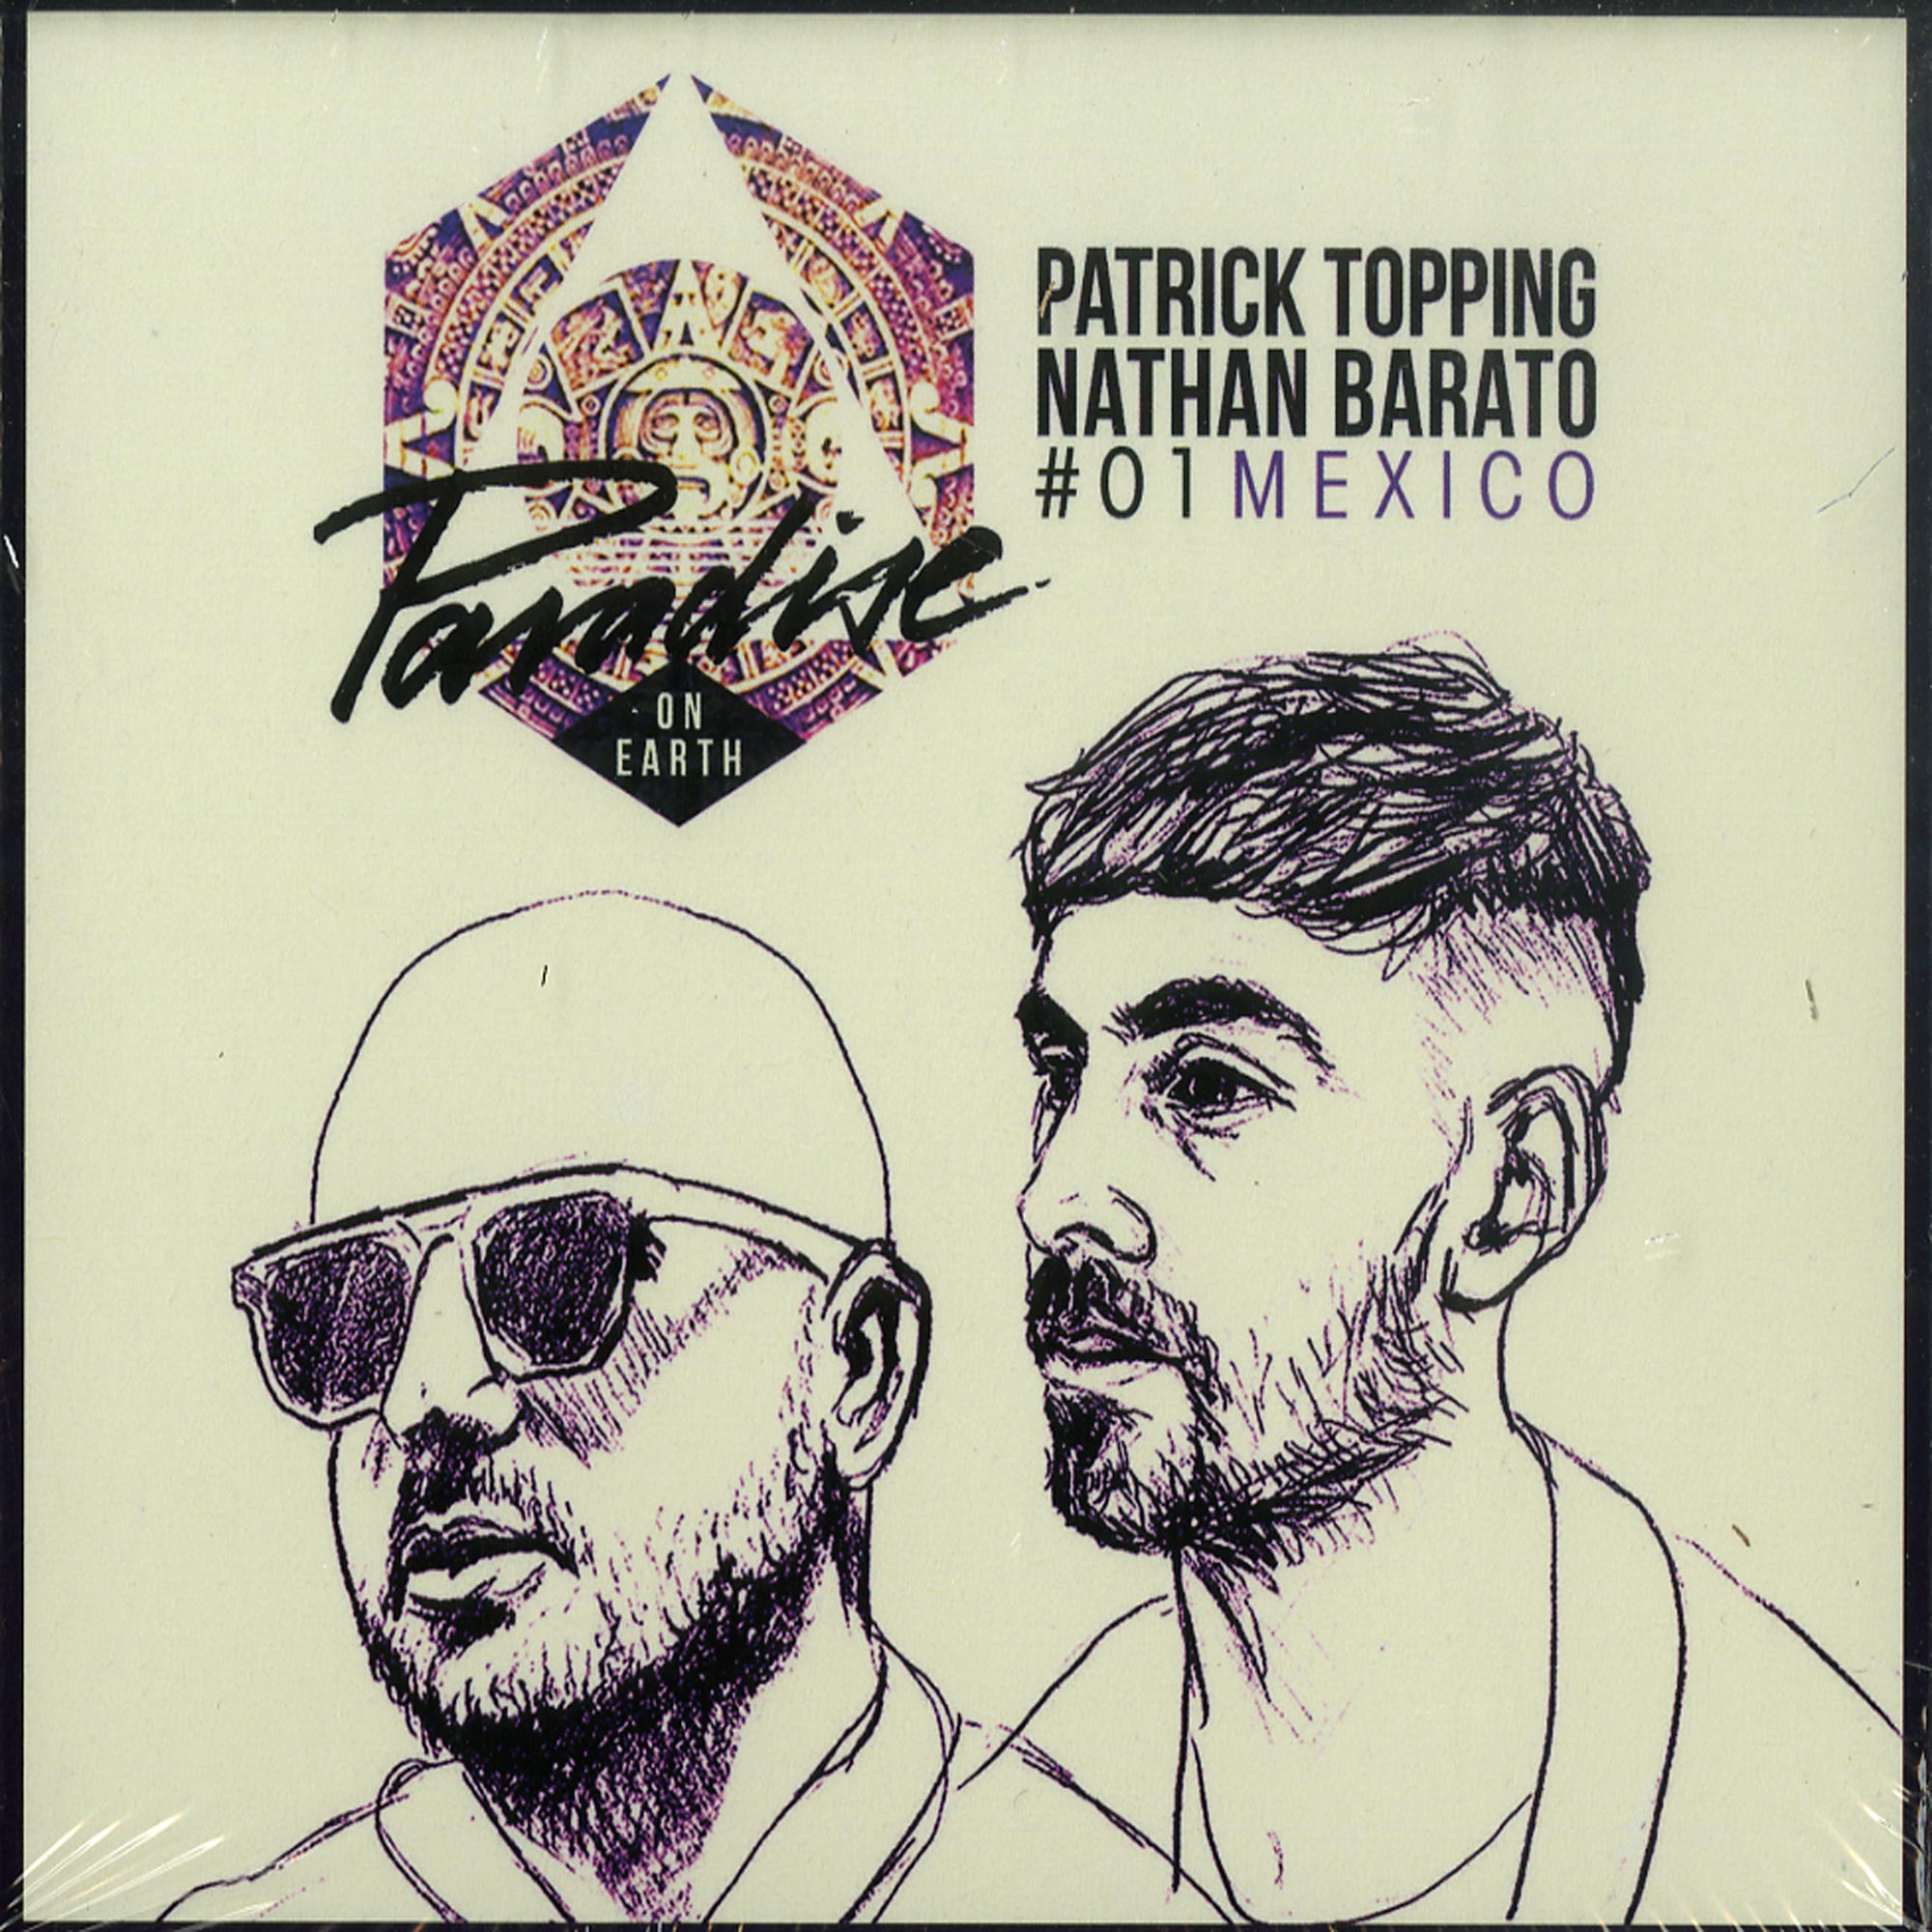 Patrick Topping & Nathan Barato - PARADISE ON EARTH - 01 MEXICO